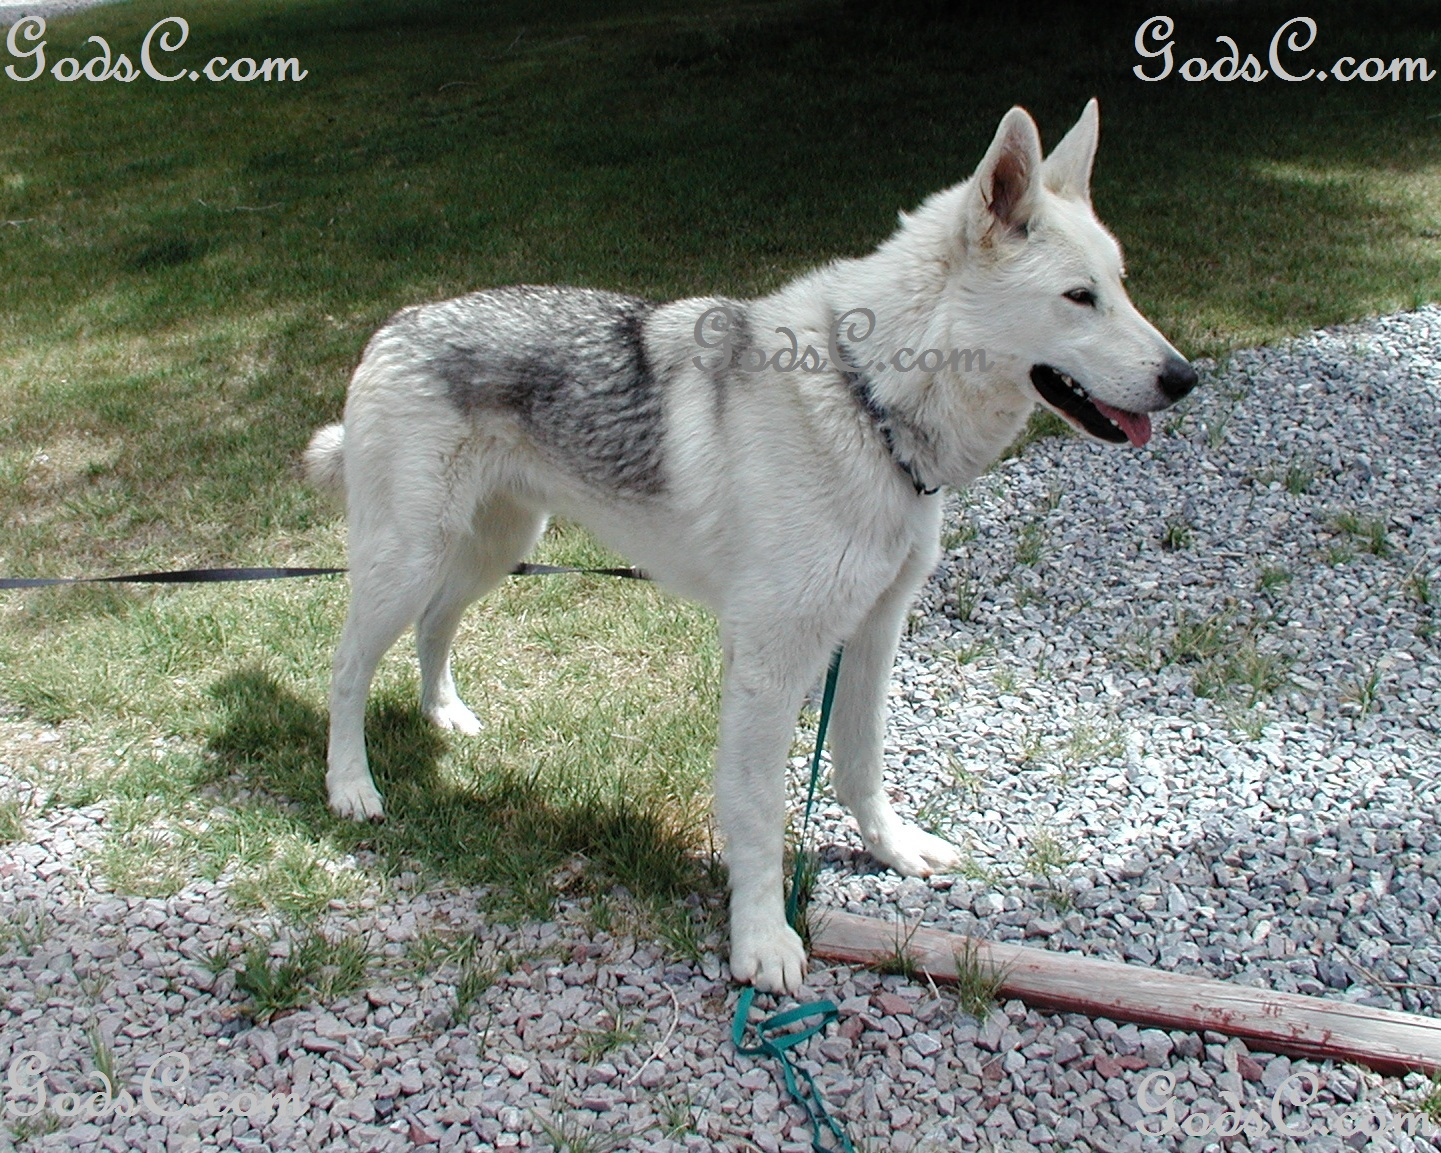 Awesome Rescued German Shepherd Siberian Husky Mix Rescued Animals Creatures Coyote Dog Mix Personality Coyote Hound Dog Mix bark post Coyote Dog Mix